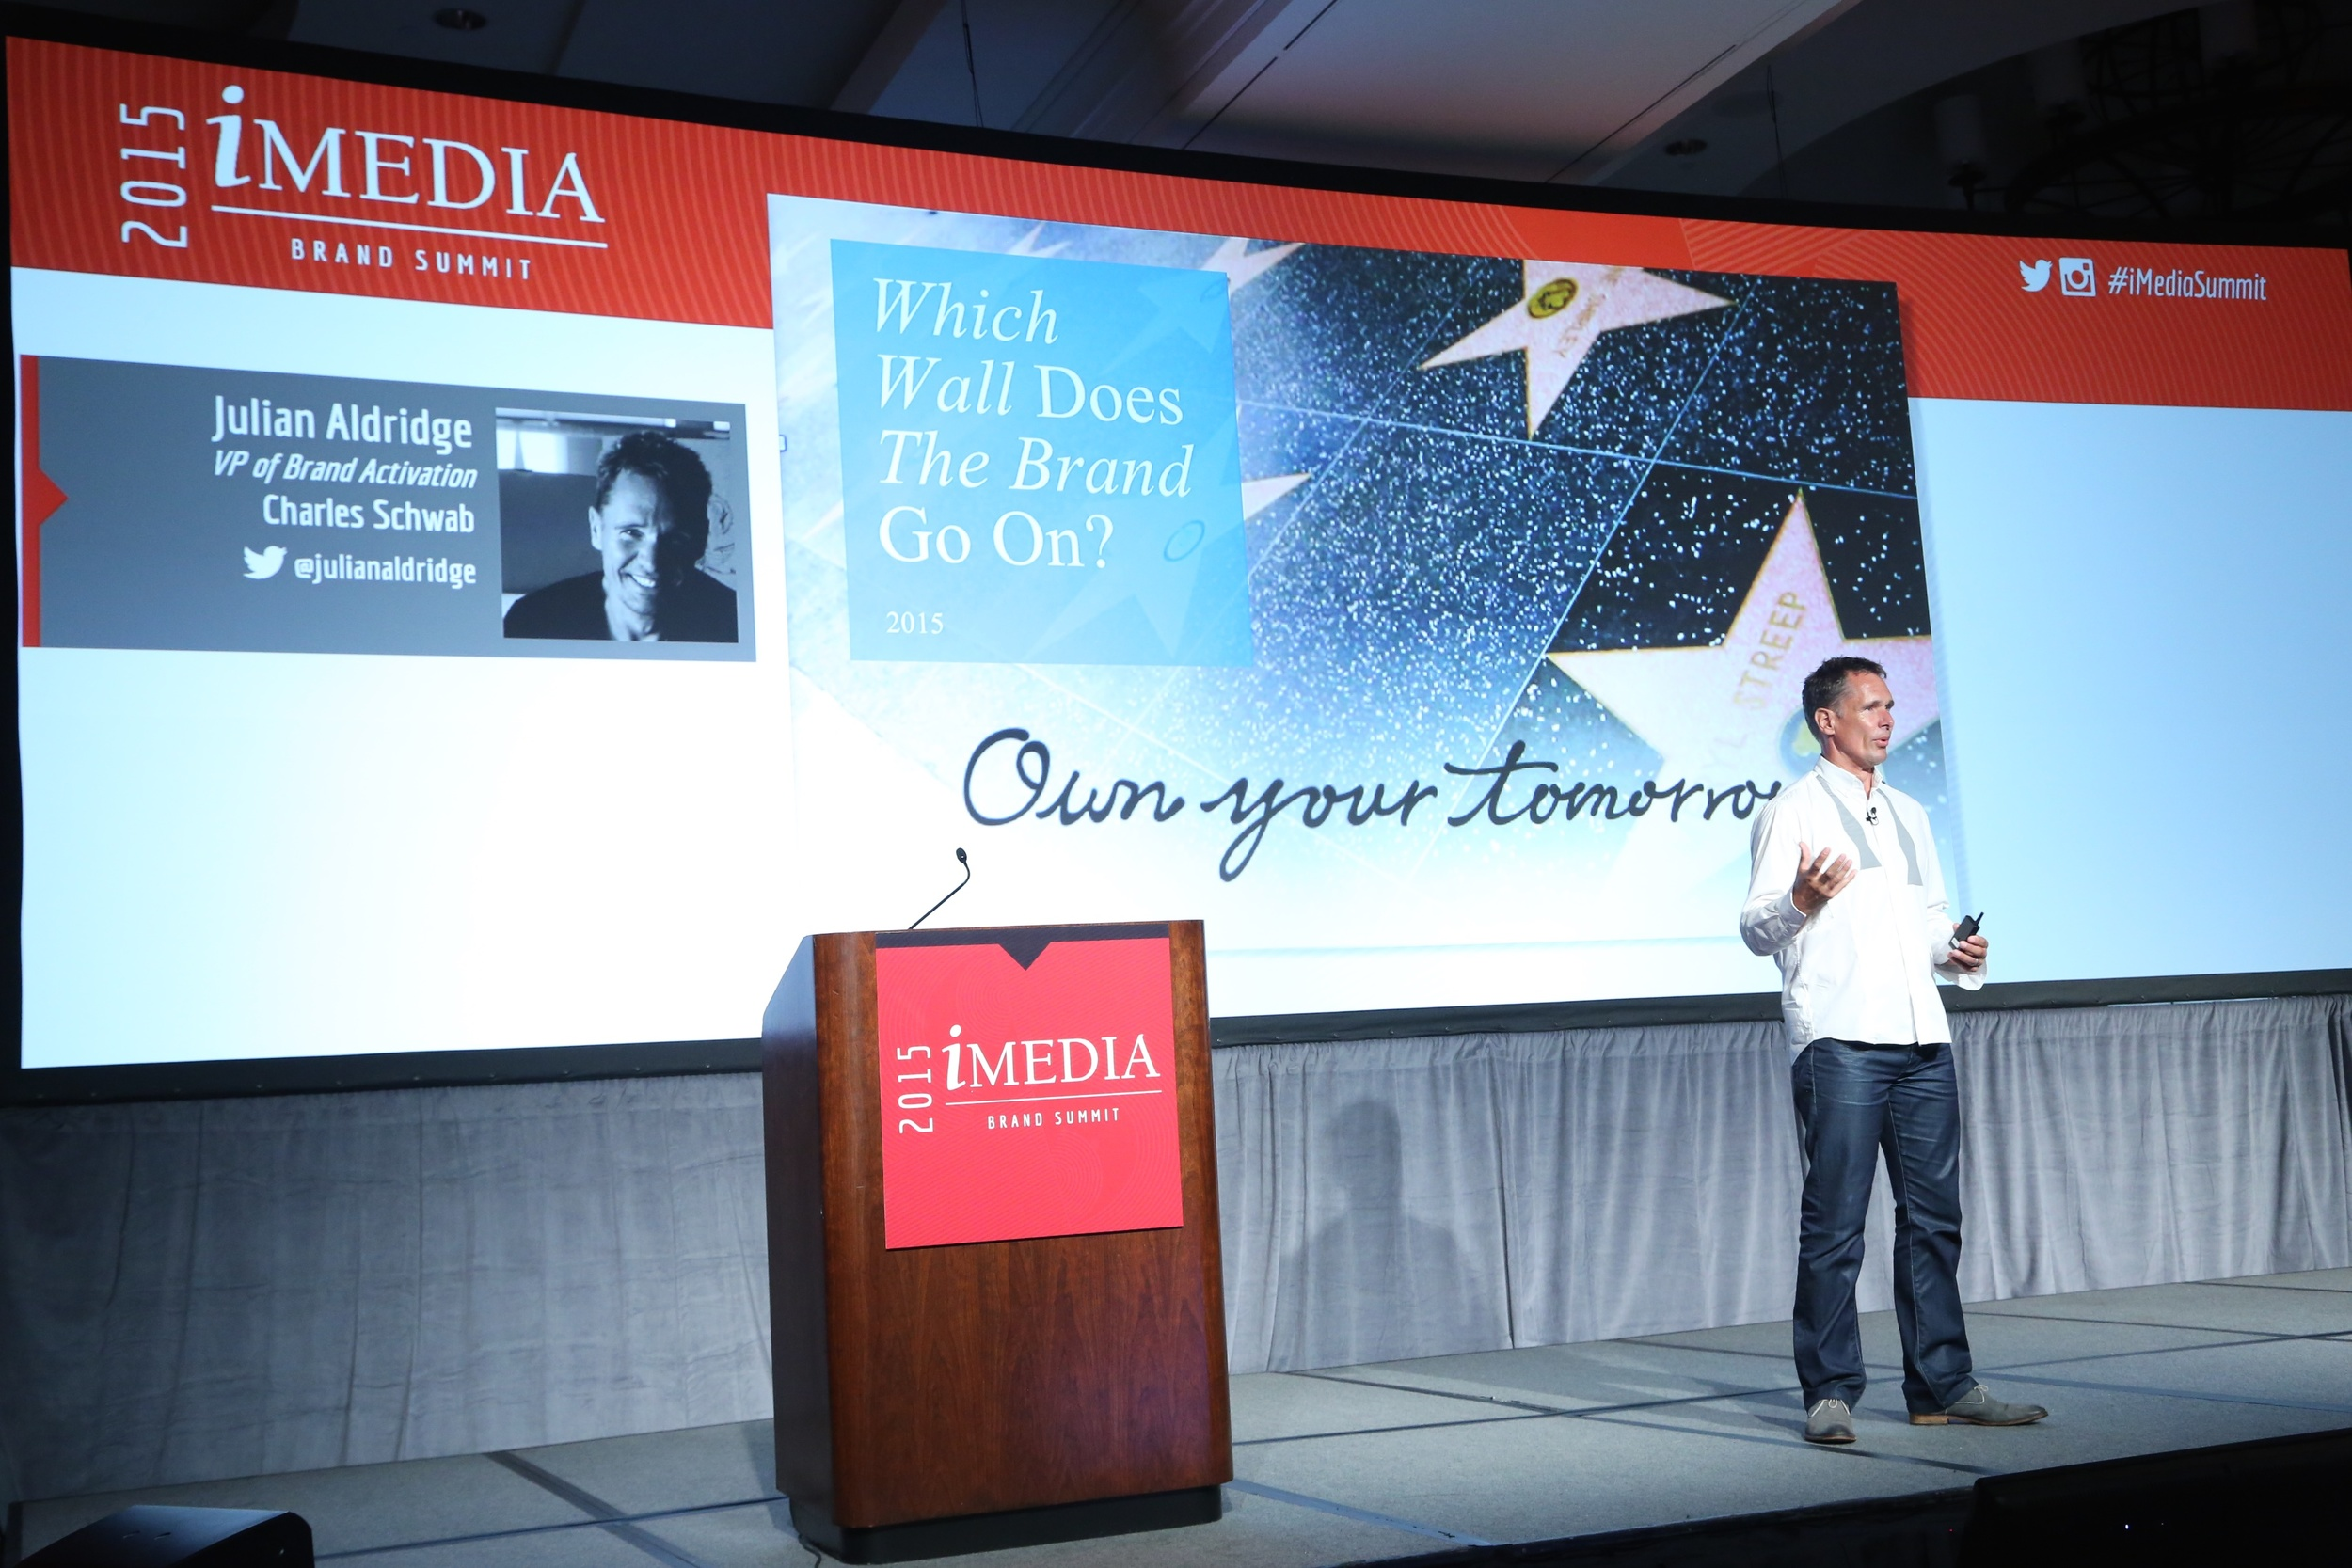 imediasummit_Julian_Aldridge 6.jpg